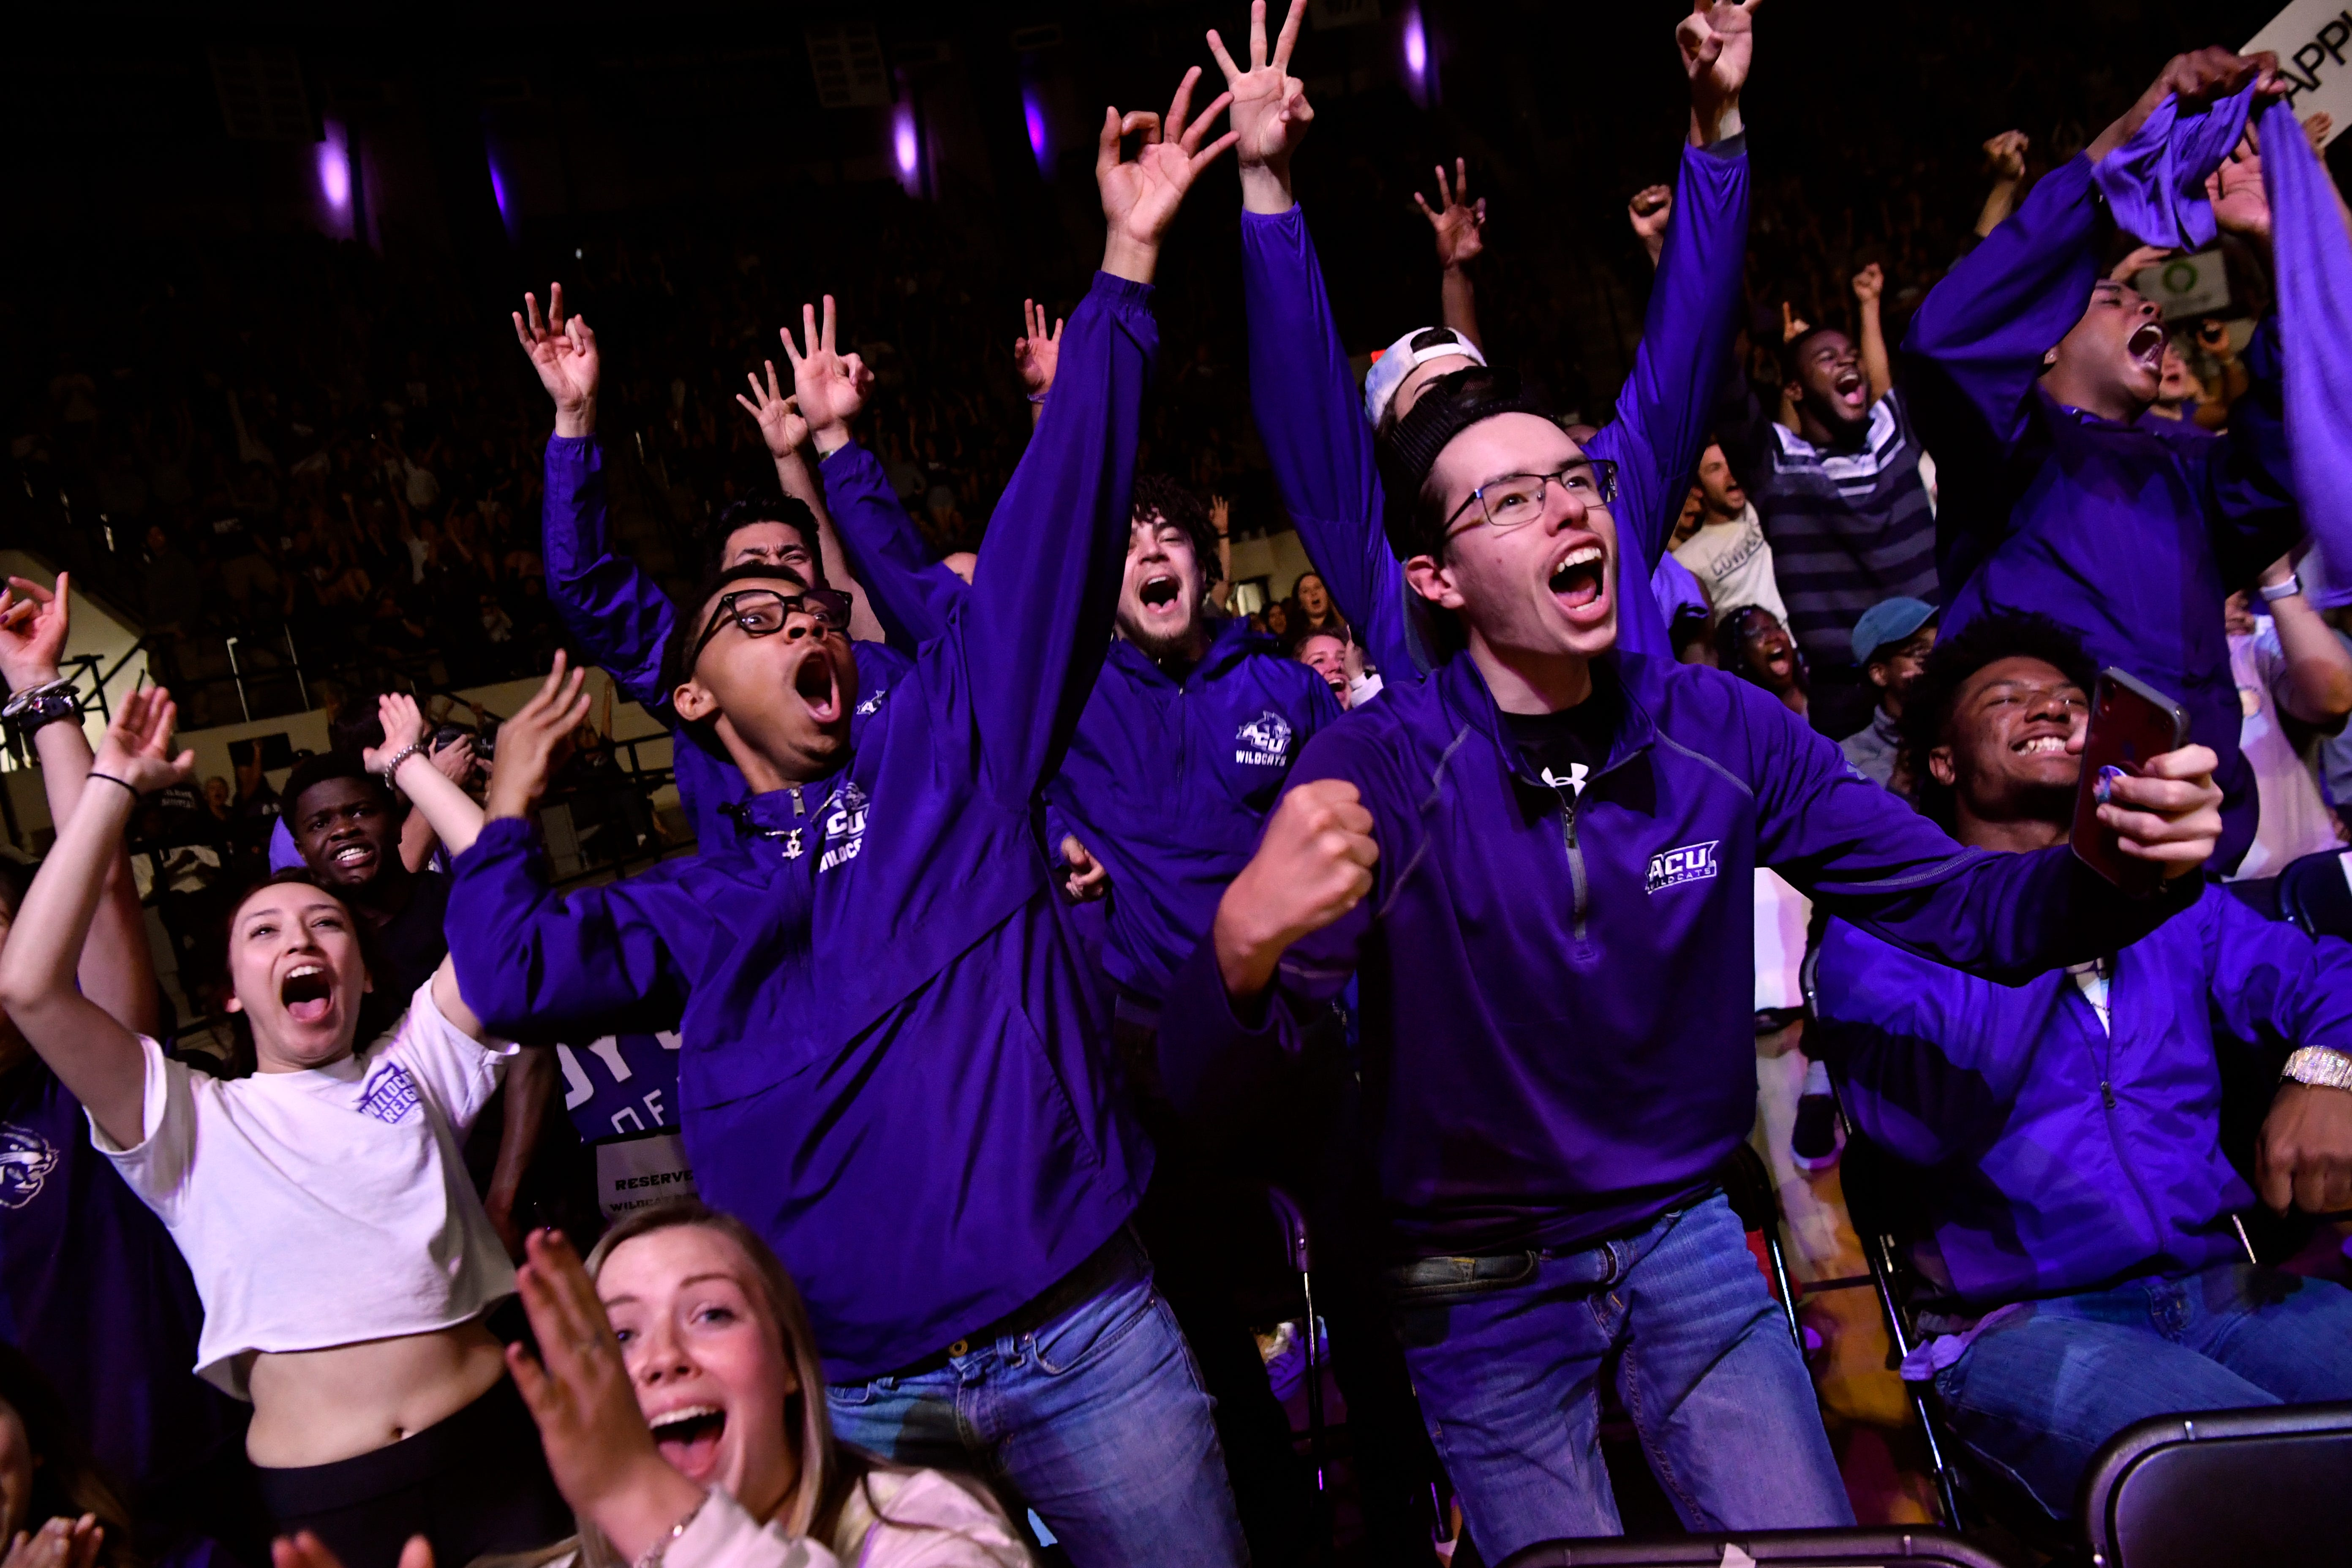 Fans erupt in cheers during a watch party at Abilene Christian University's Moody Coliseum as the Wildcats sink their first three-point basket against the University of Kentucky on Thursday. The ACU men took on the basketball powerhouse in their first trip to the NCAA Tournament, ending with a loss to No. 2 UK, 79-44.